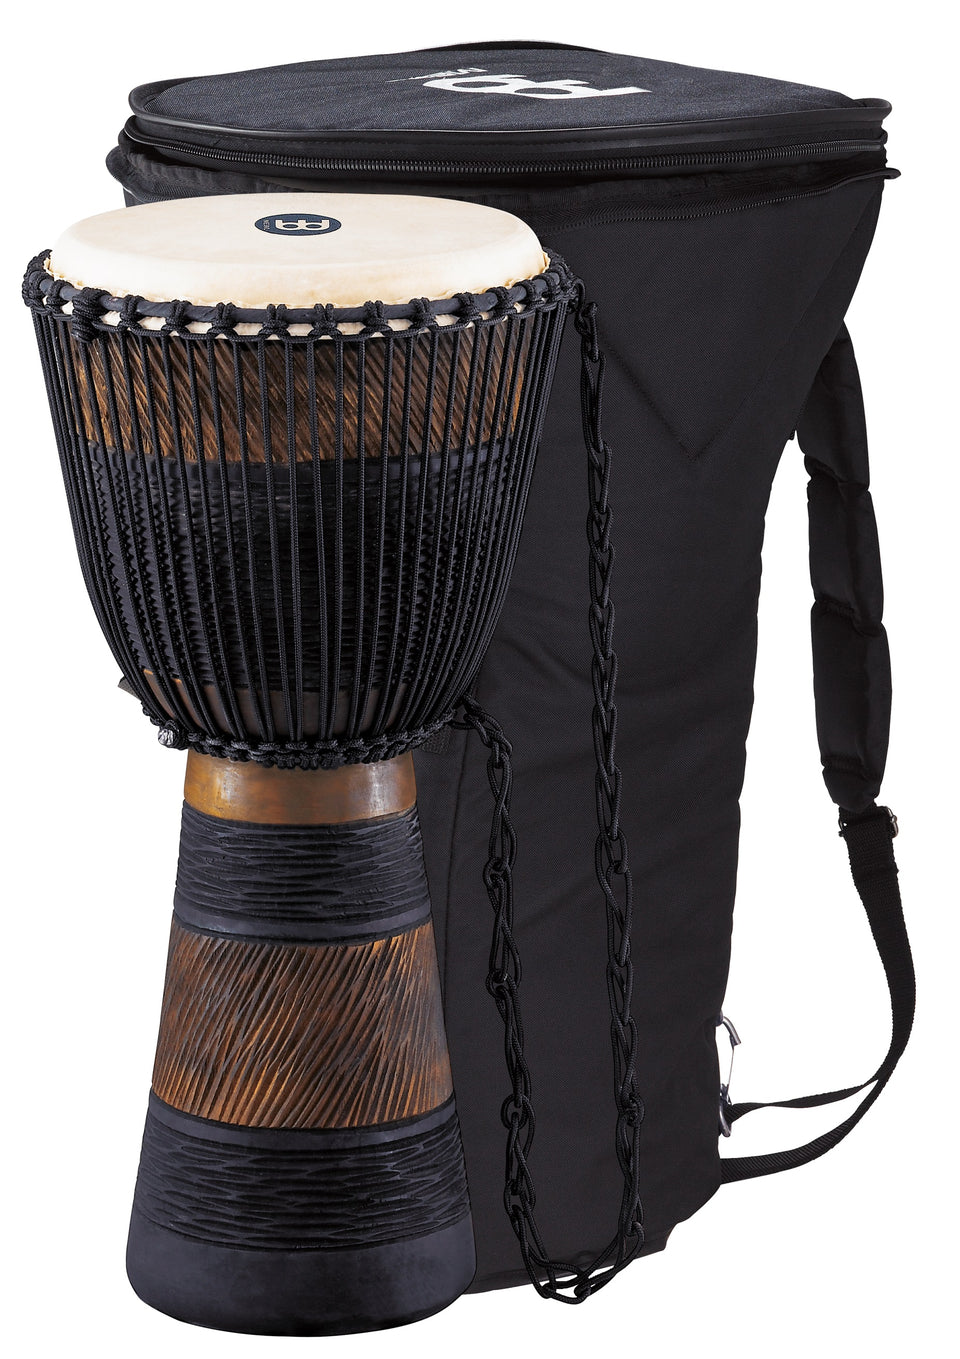 "Meinl ADJ3-L BAG Original African Style Rope Tuned Wood Djembe 12"" + Bag"